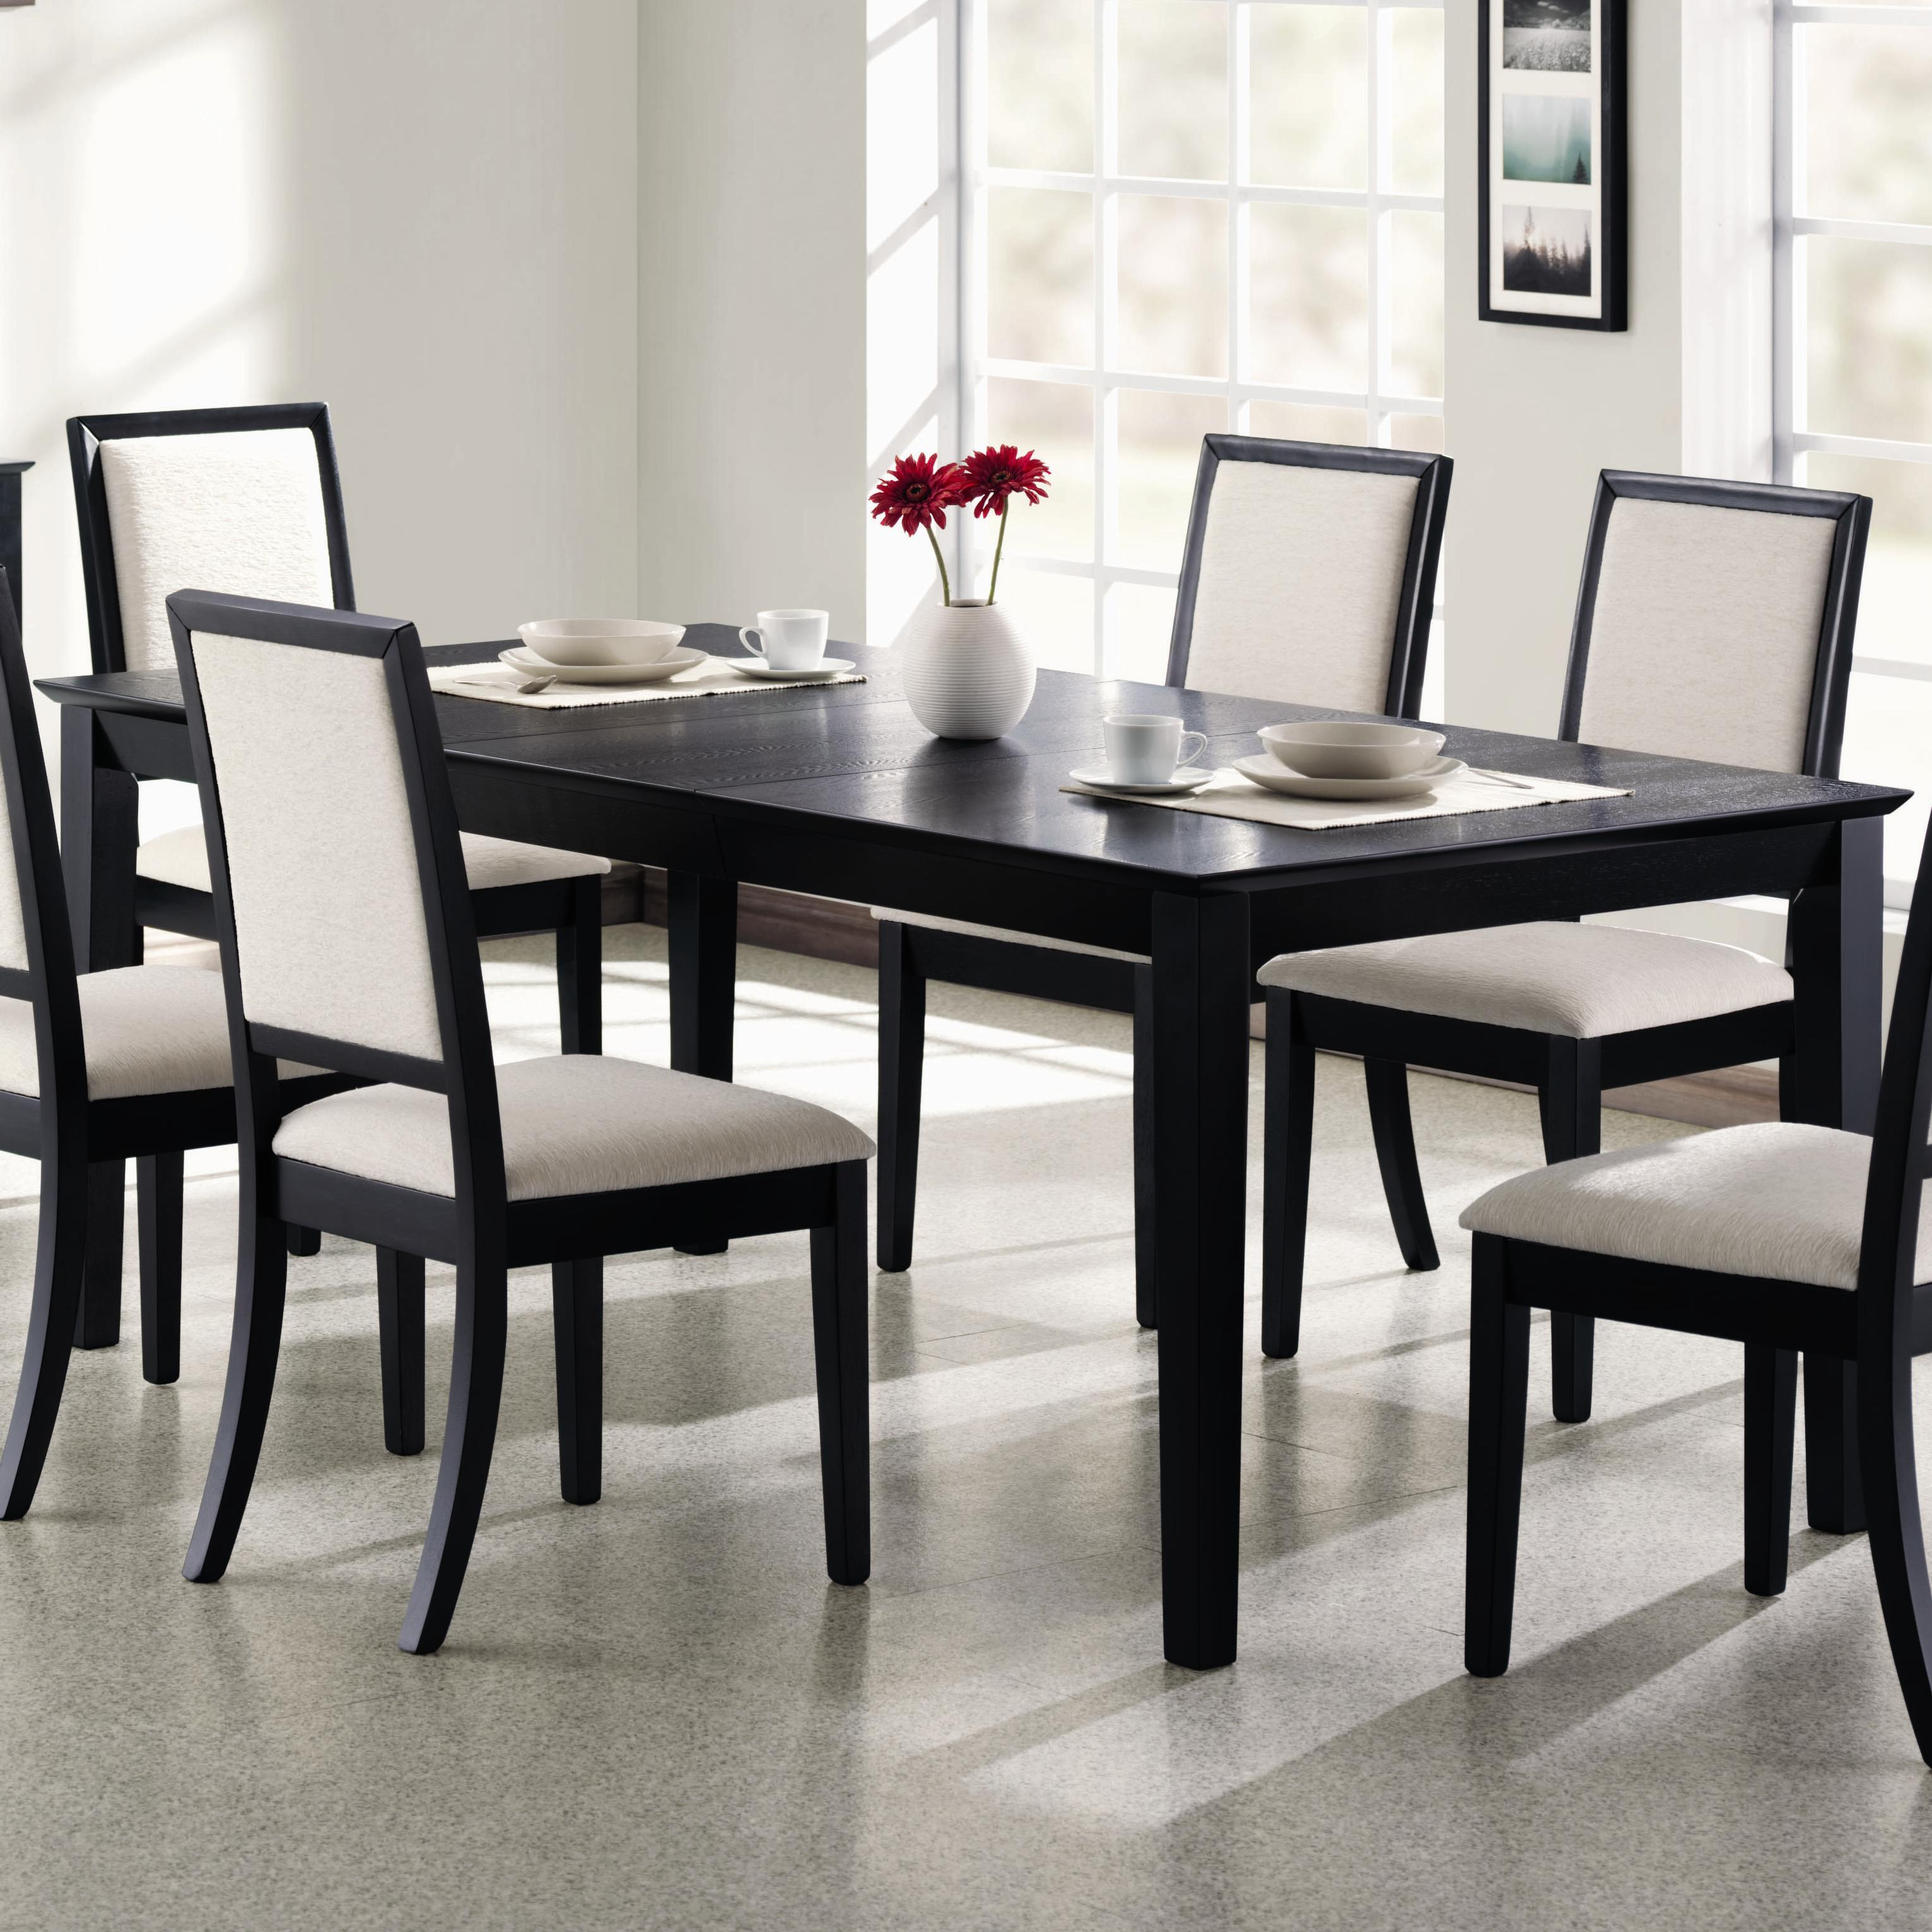 Well-known Modern Black Dining Table. Coaster Lexton Rectangular Dining Table  CJ49